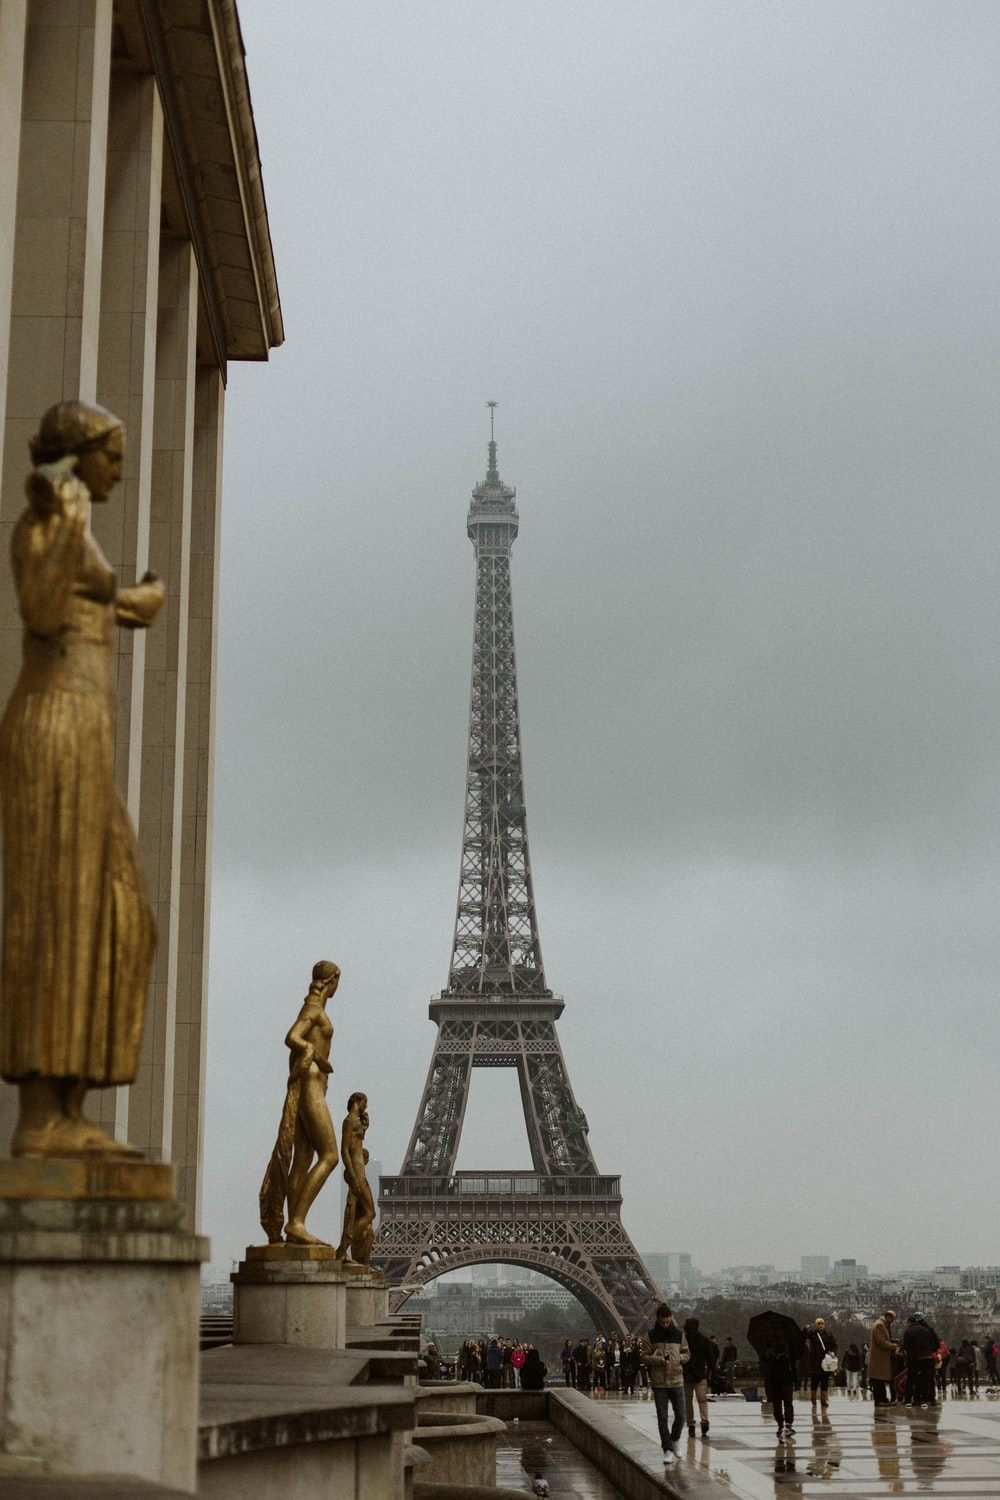 photography of people gathering beside Eiffel Tower during daytime